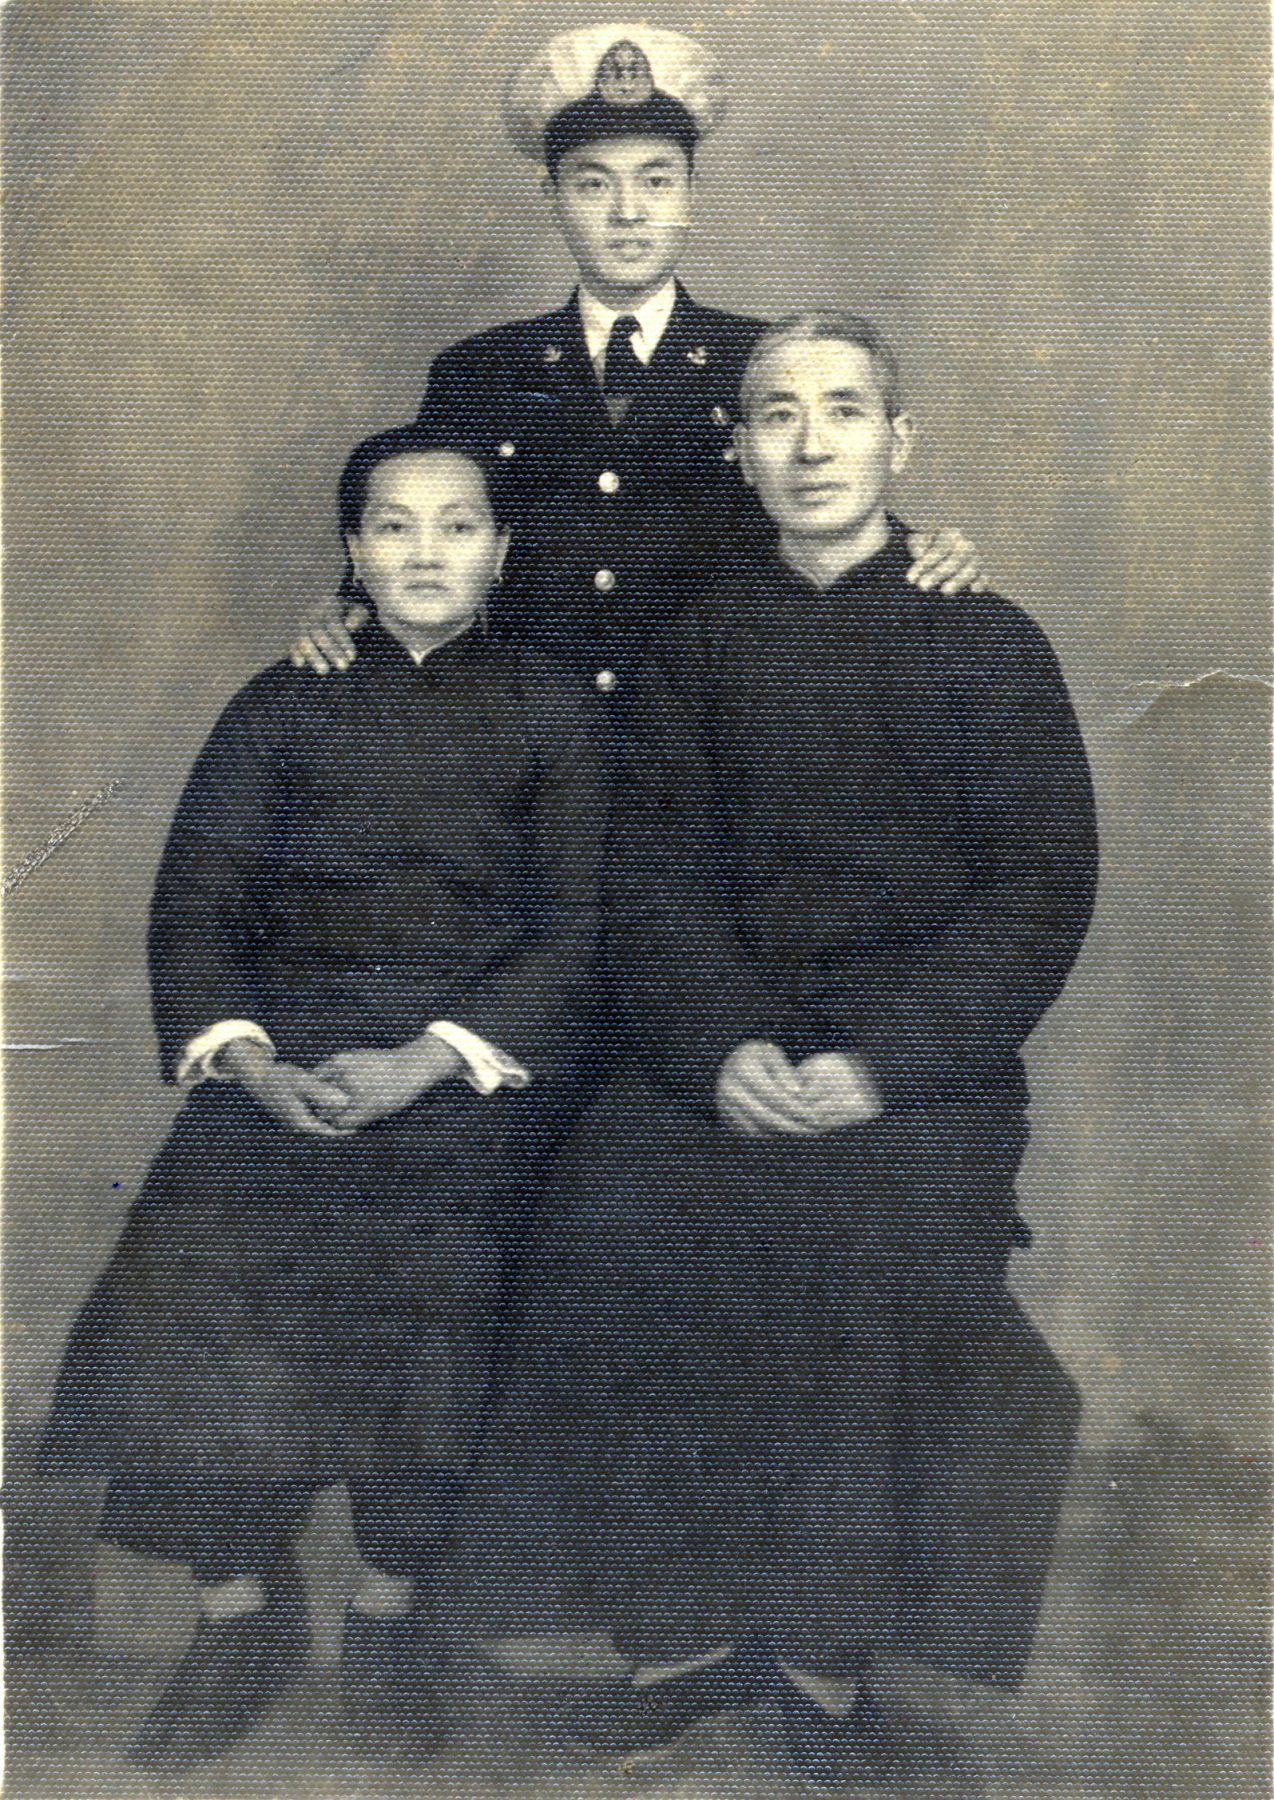 Last photo of Dr. James S. C. Chao with his parents, Mr. Yi-Ren Chao and Mrs. Yu-Chin Hsu Chao, before he went off to sea. It would be 23 years before he would be reunited with his mother. He would never see his father again.